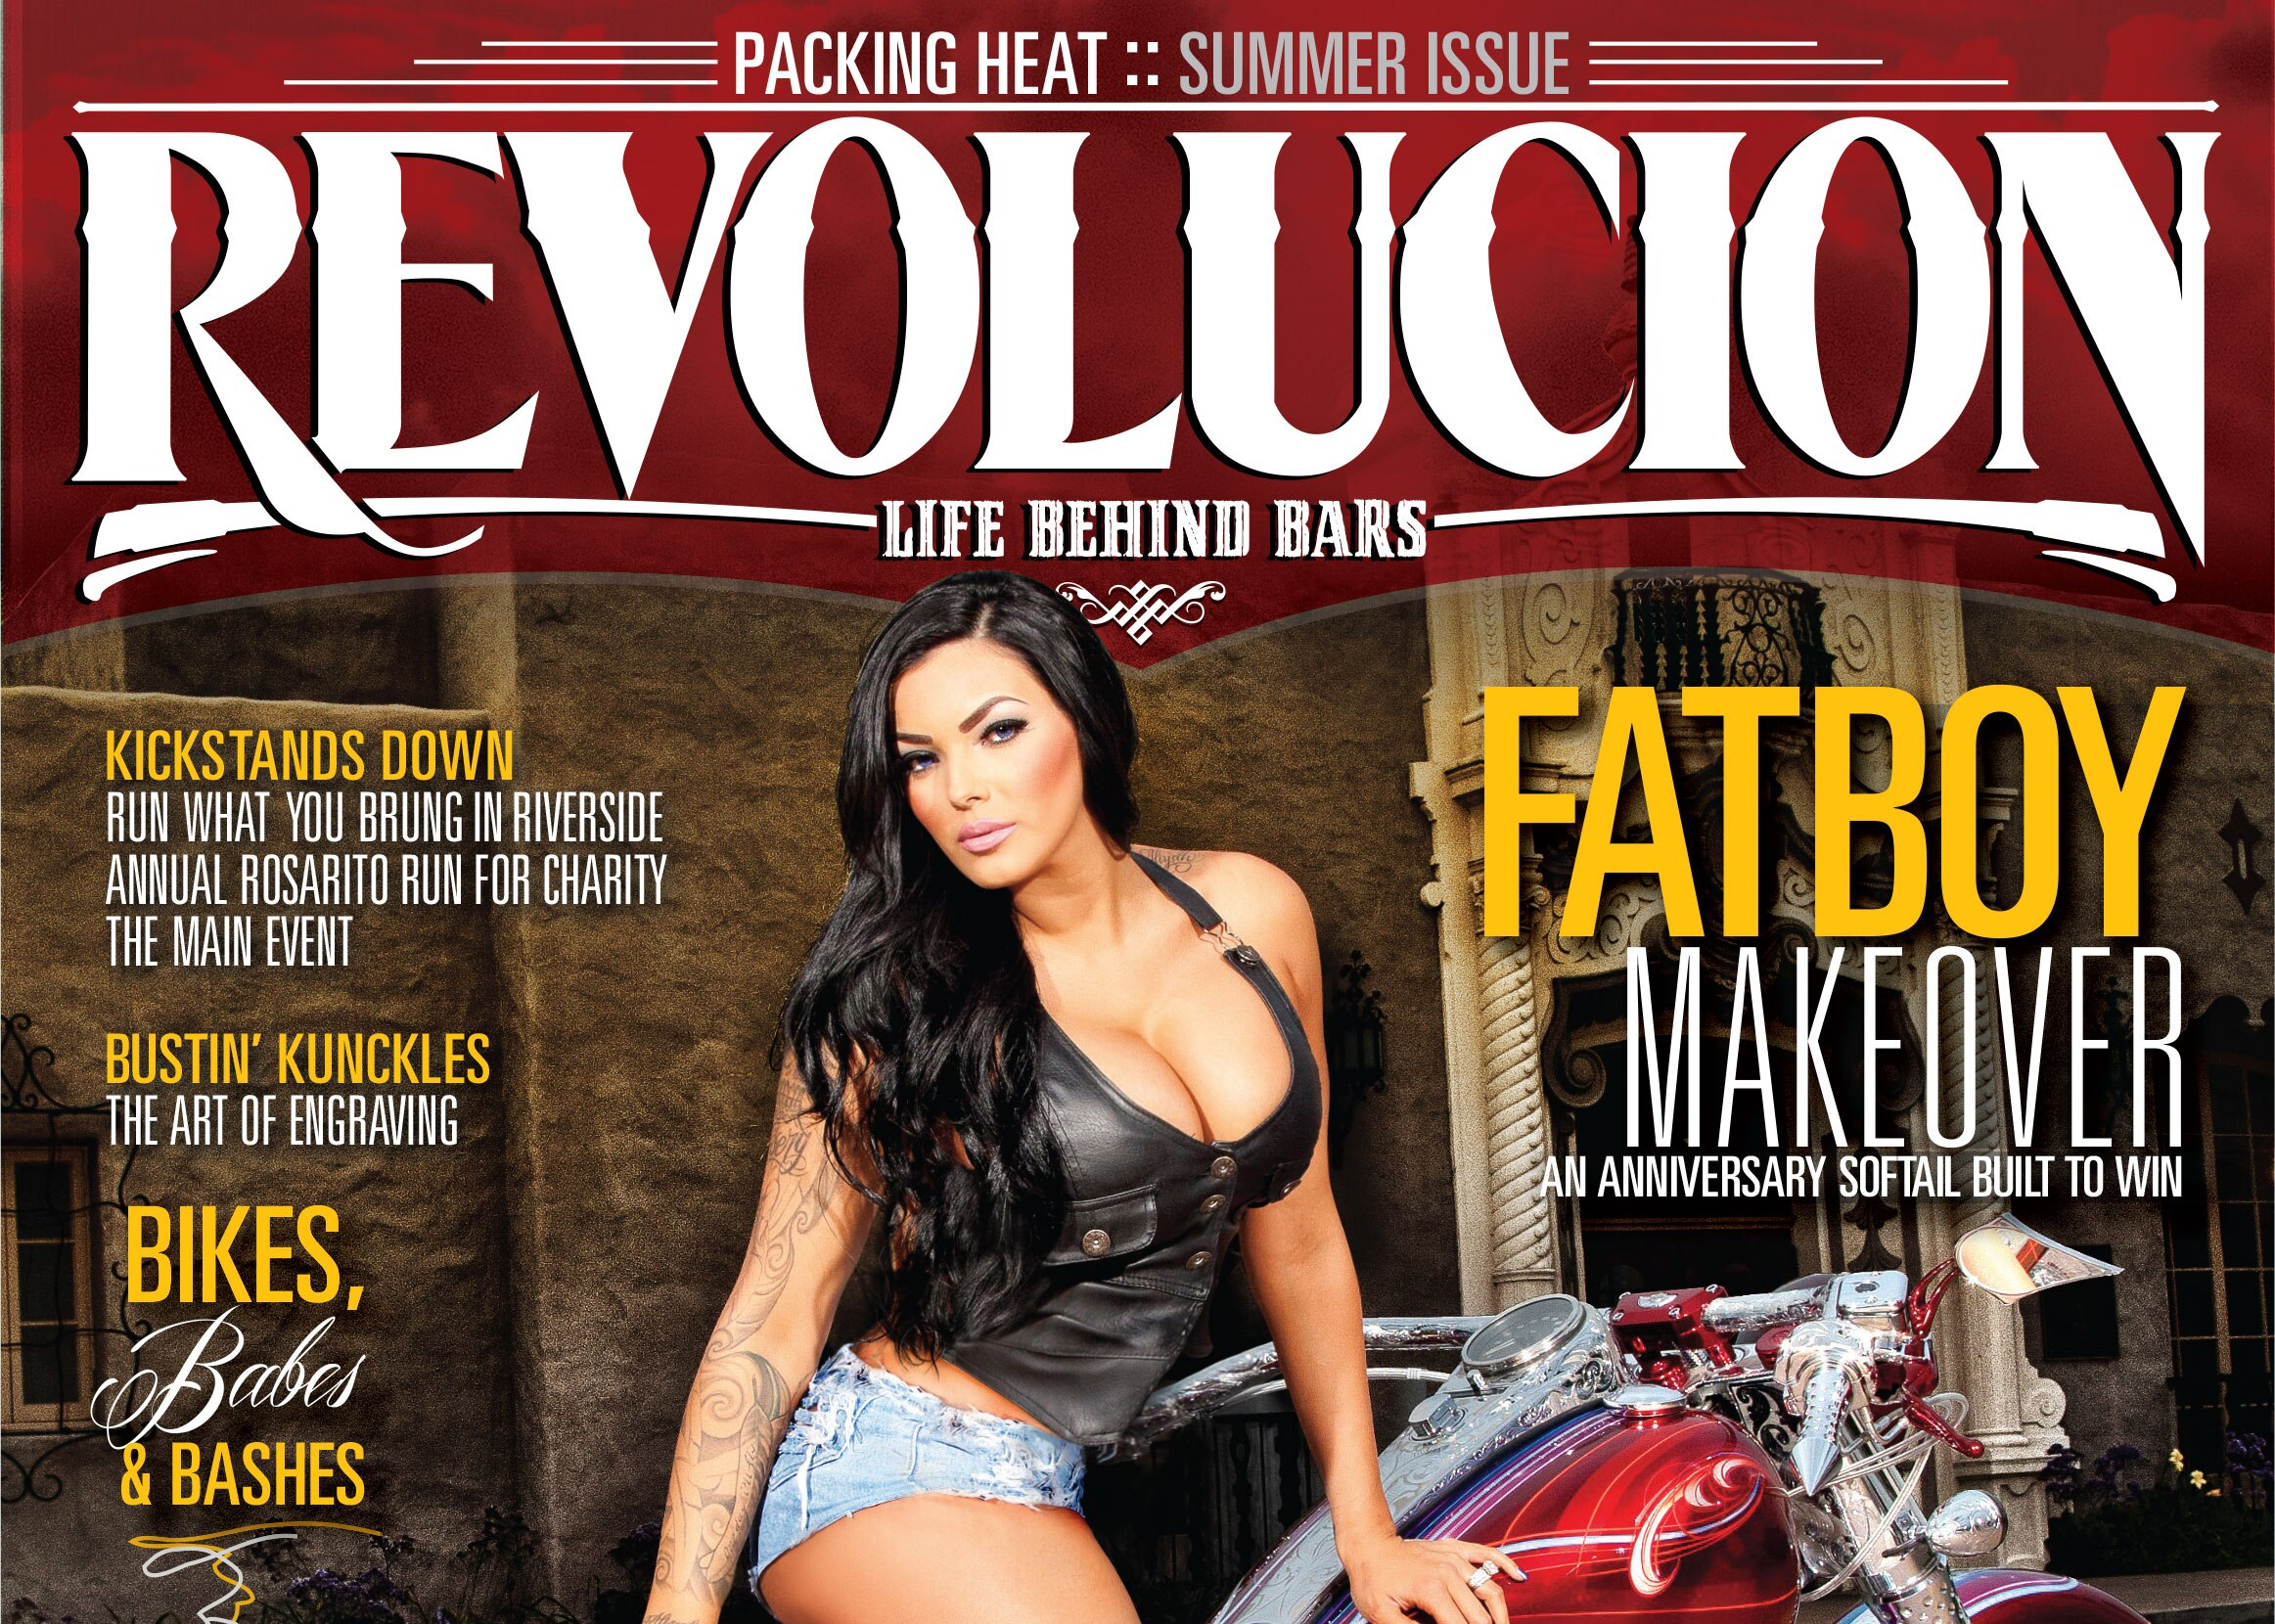 1305-issue-3-revolucion-magazine-cover-hp